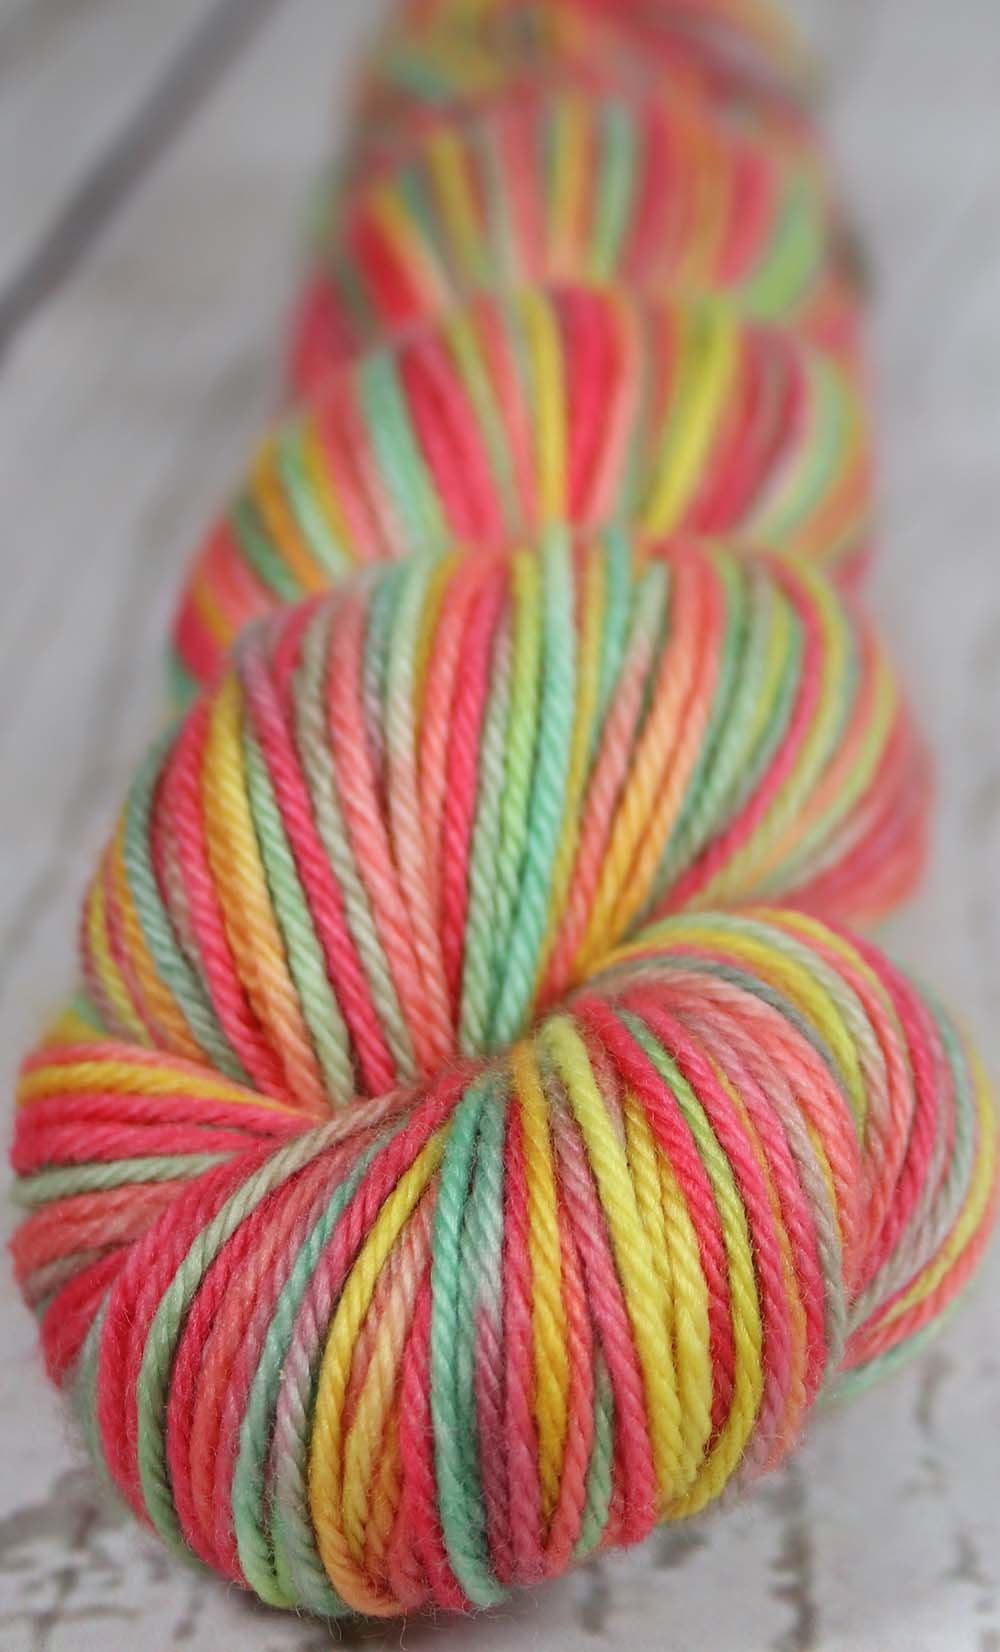 VIBRANCY AT THE PLANTATION: SW Merino - Worsted - Hand dyed Variegated Yarn - tropical Hawaii colors